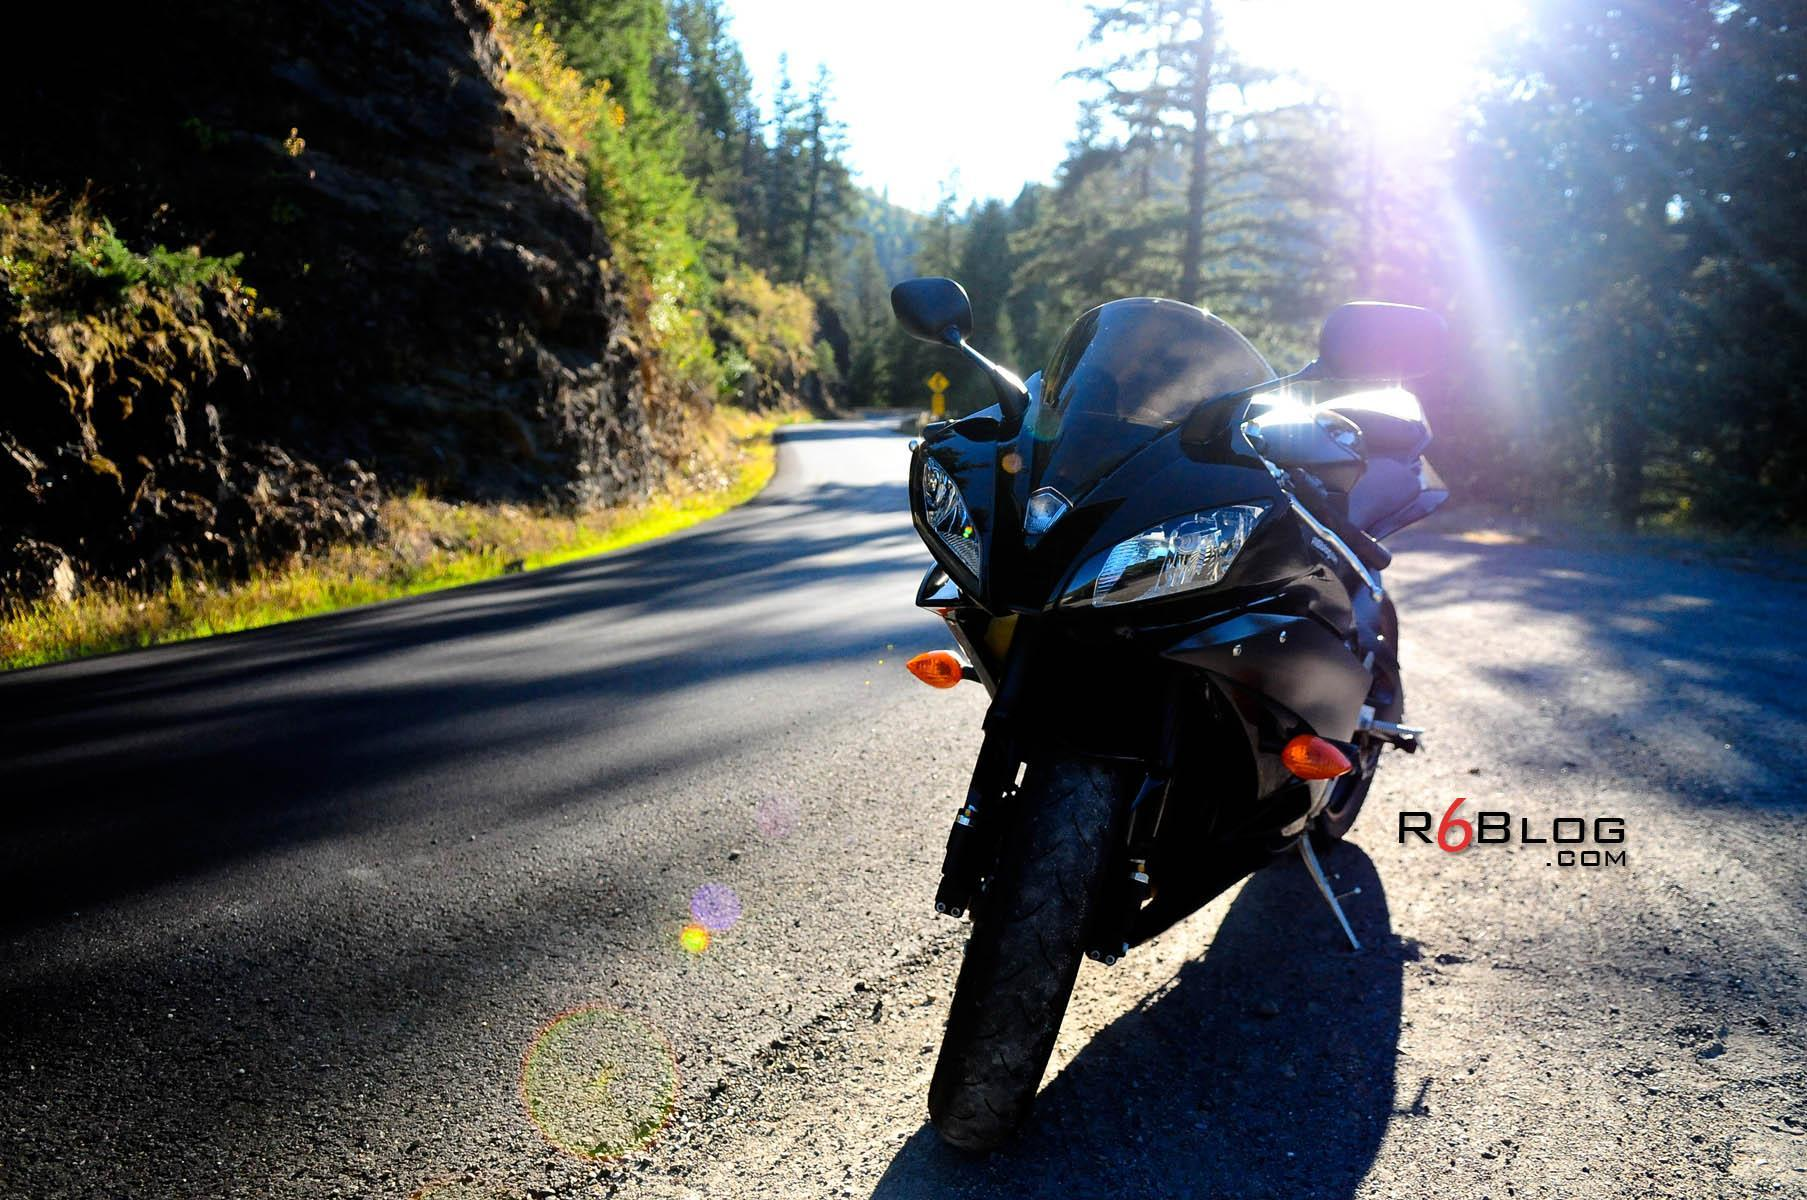 New Yamaha R6 Wallpapers From R6Blog.com! Yamaha R6 Wallpaper 7 ...